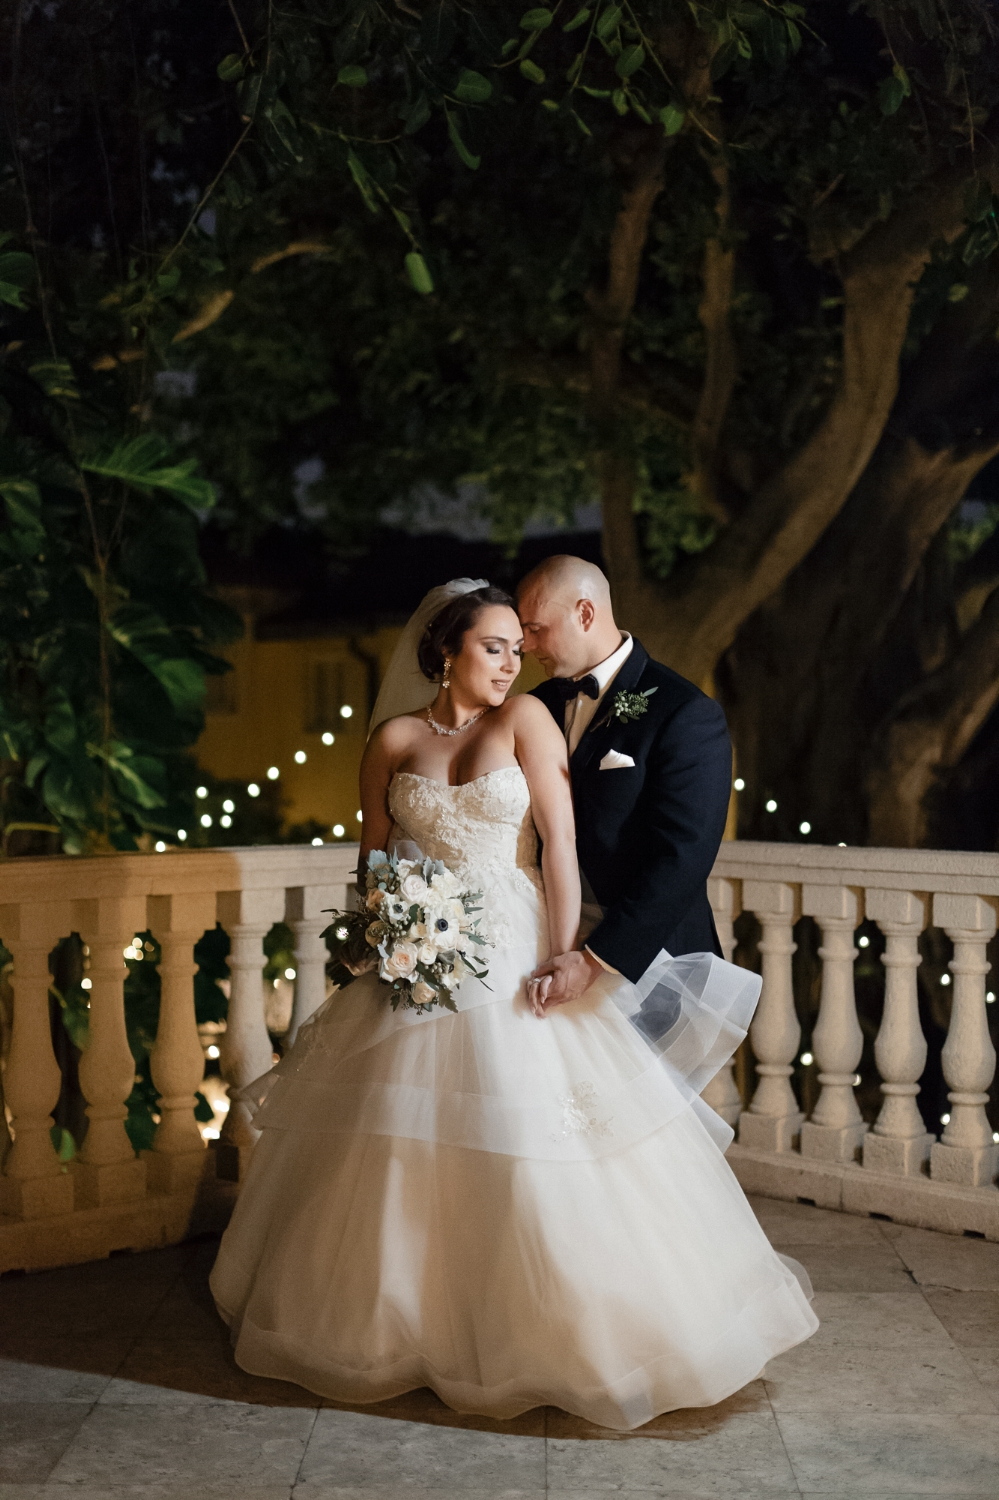 Bride and groom nighttime portrait at the Addison in Boca Raton